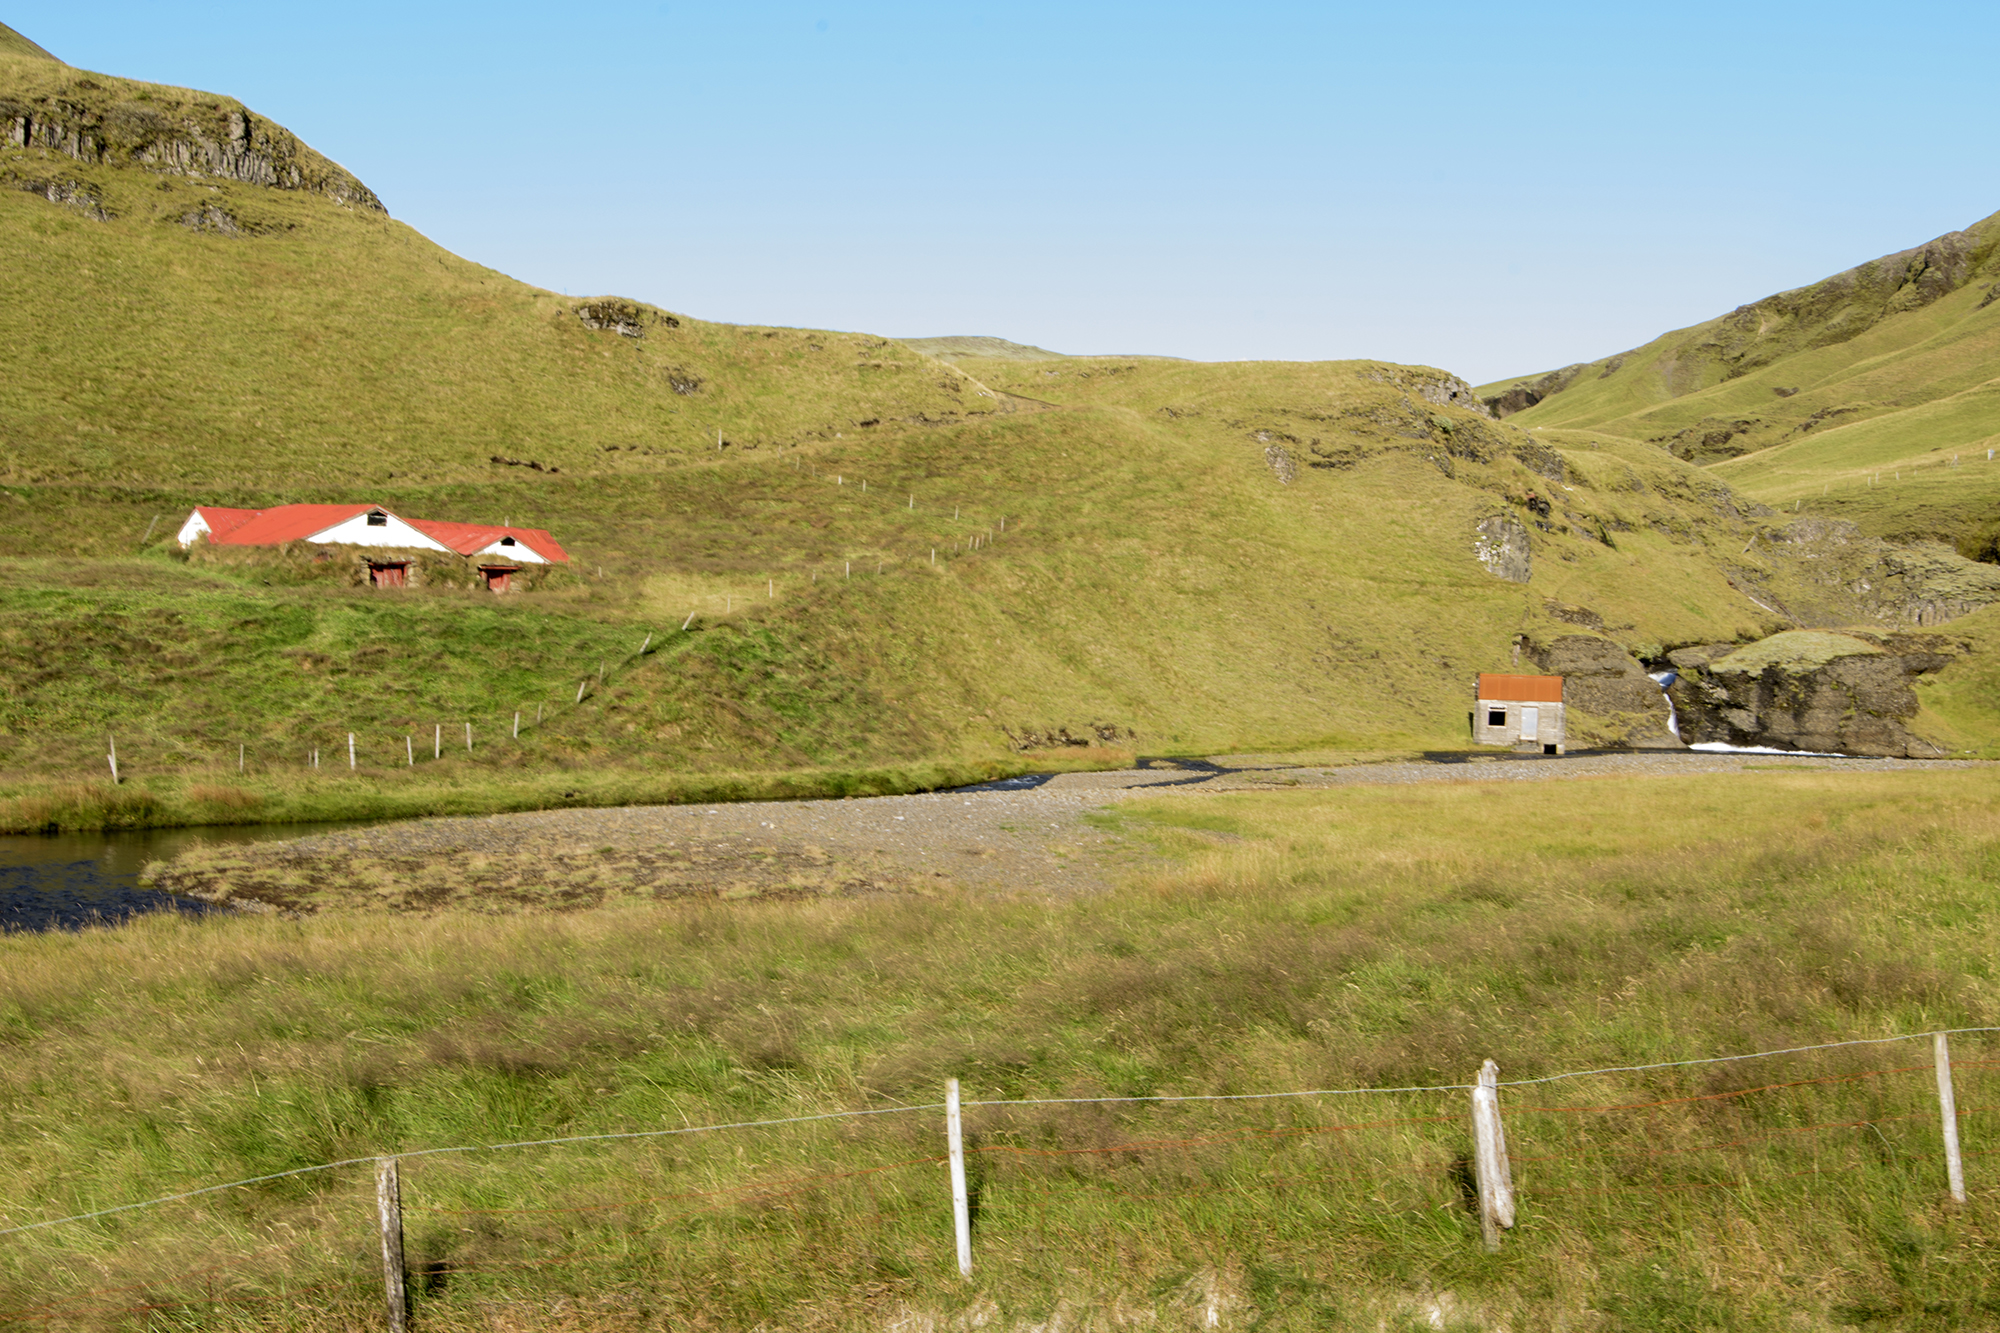 cottages in the hillside